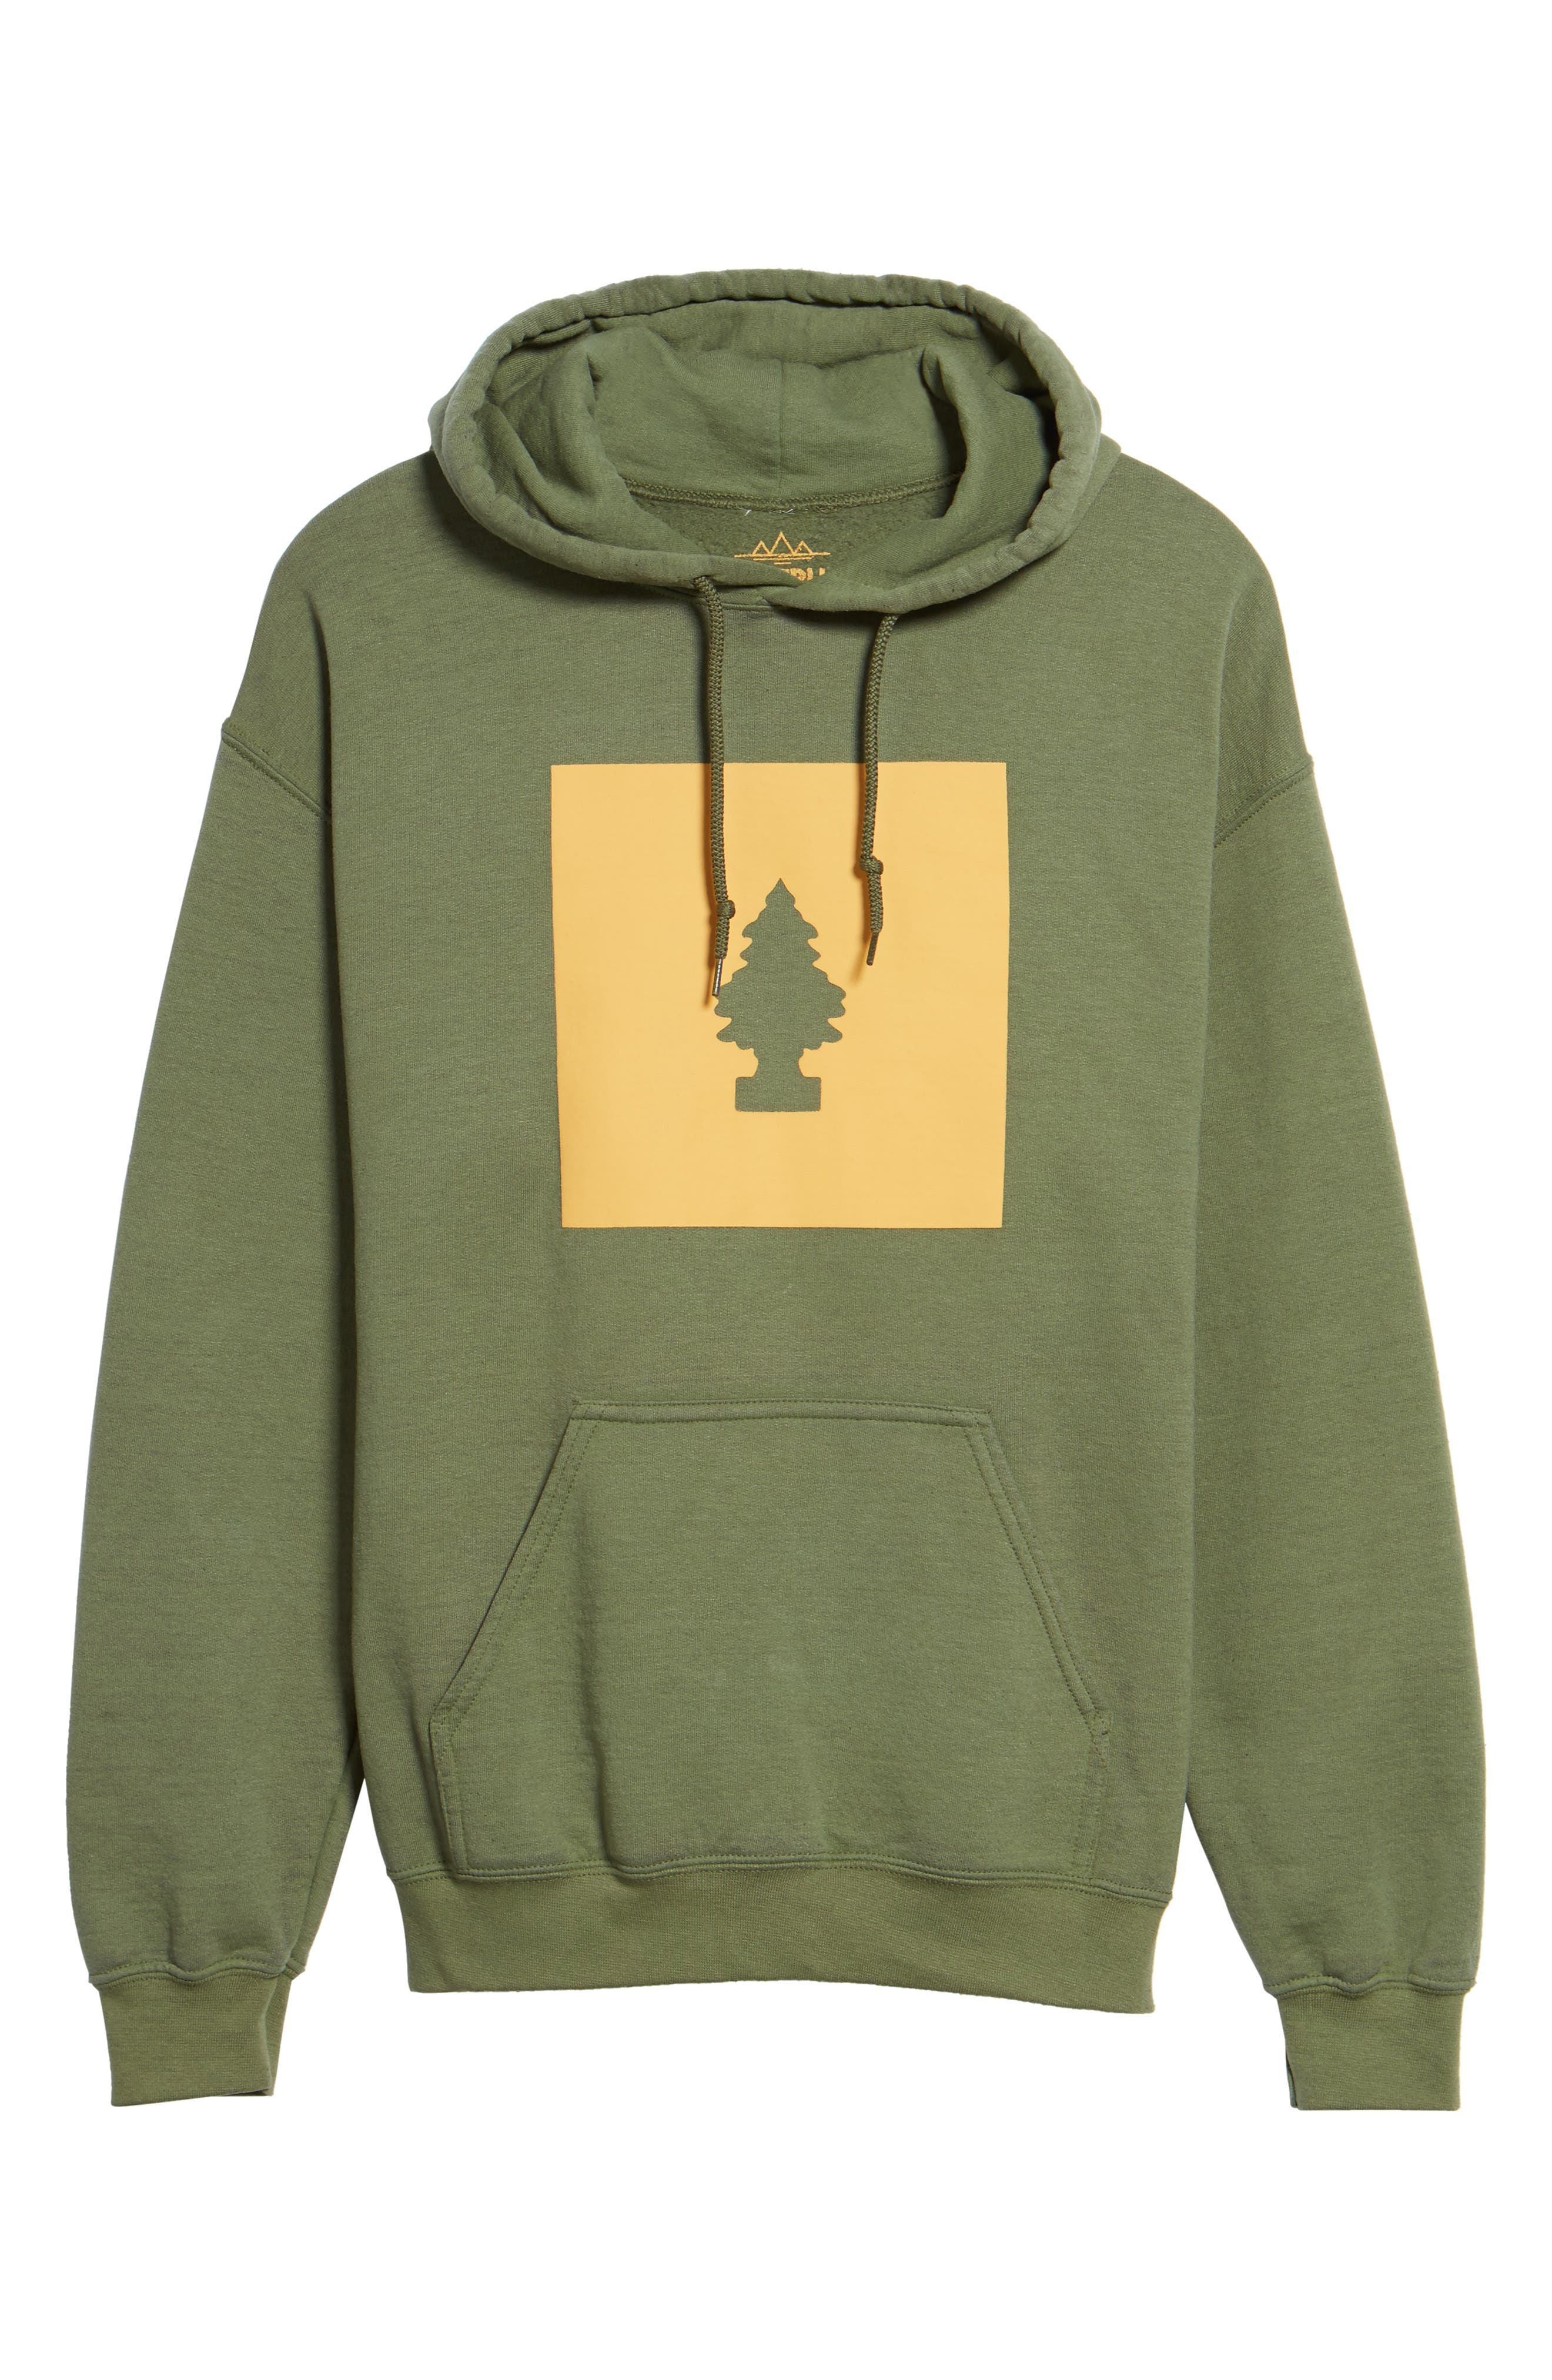 Happy Little Tree Hoodie,                             Alternate thumbnail 6, color,                             300